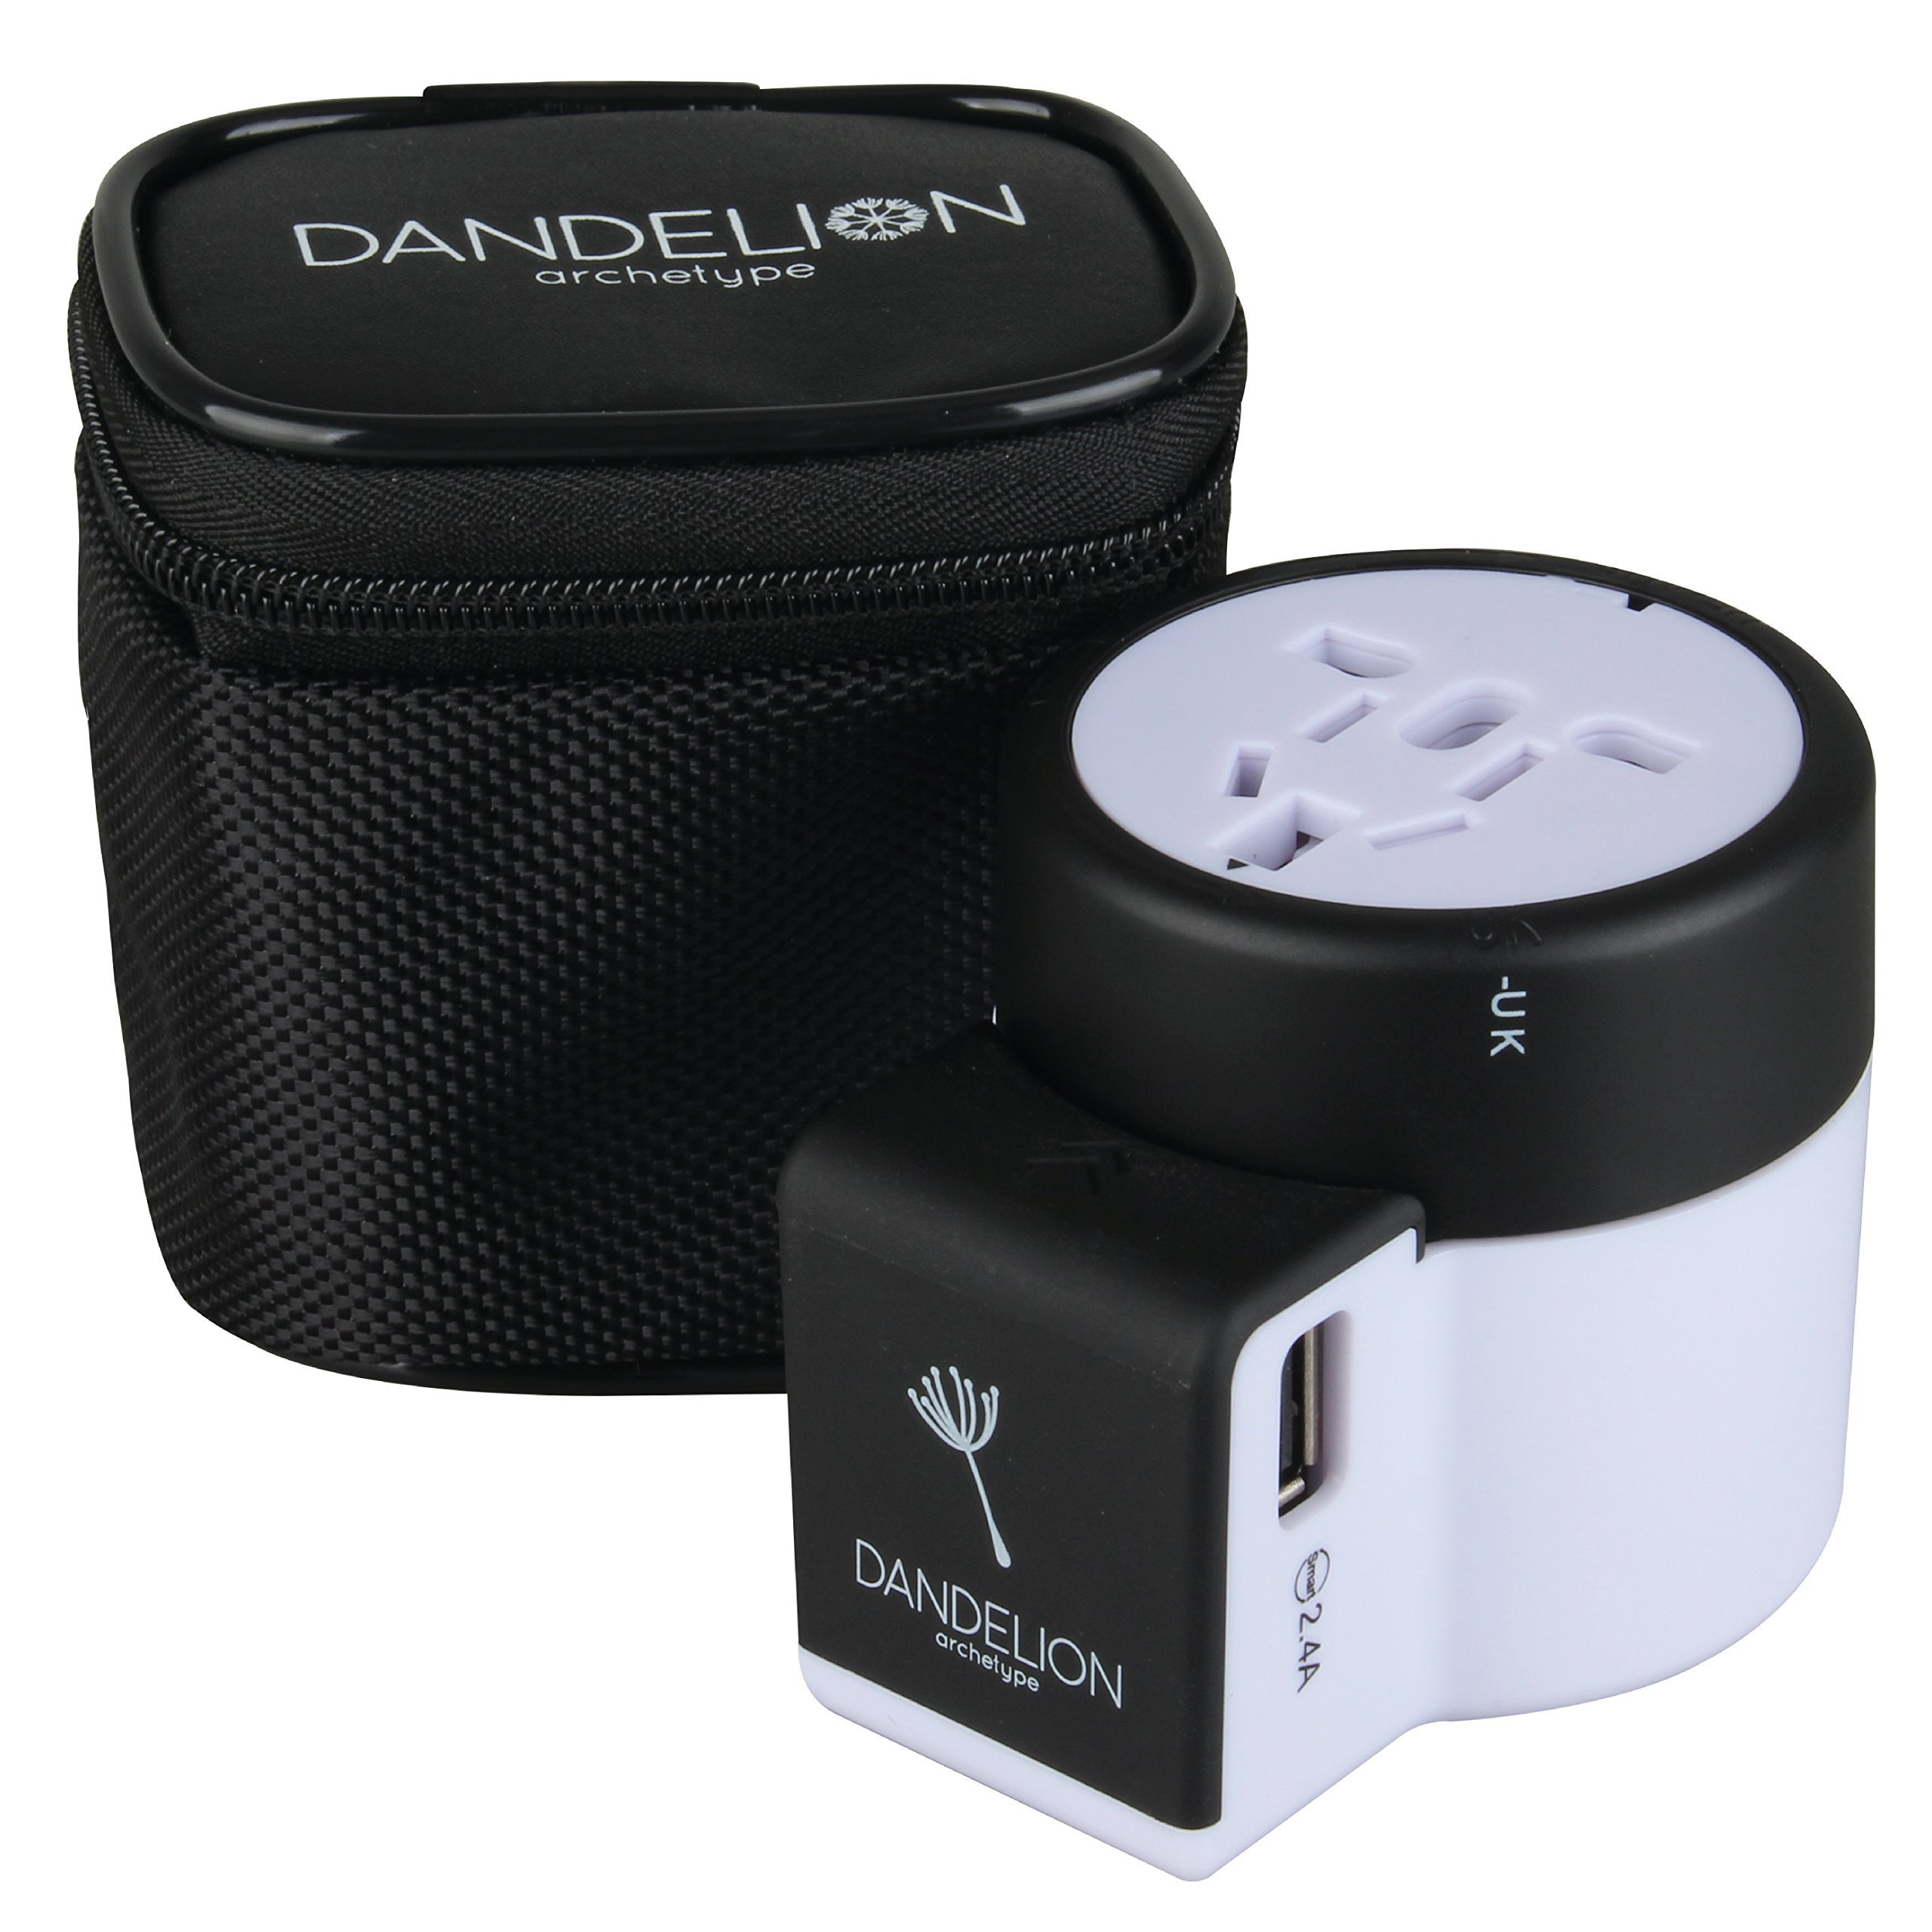 Dandelion Travel adapter Outlet adapter travel accessory with dual USB ports Universal Charger (UK, US, AU, Europe & Asia) International Power Plug Adapter with safety fuse - great travel gift (Black)